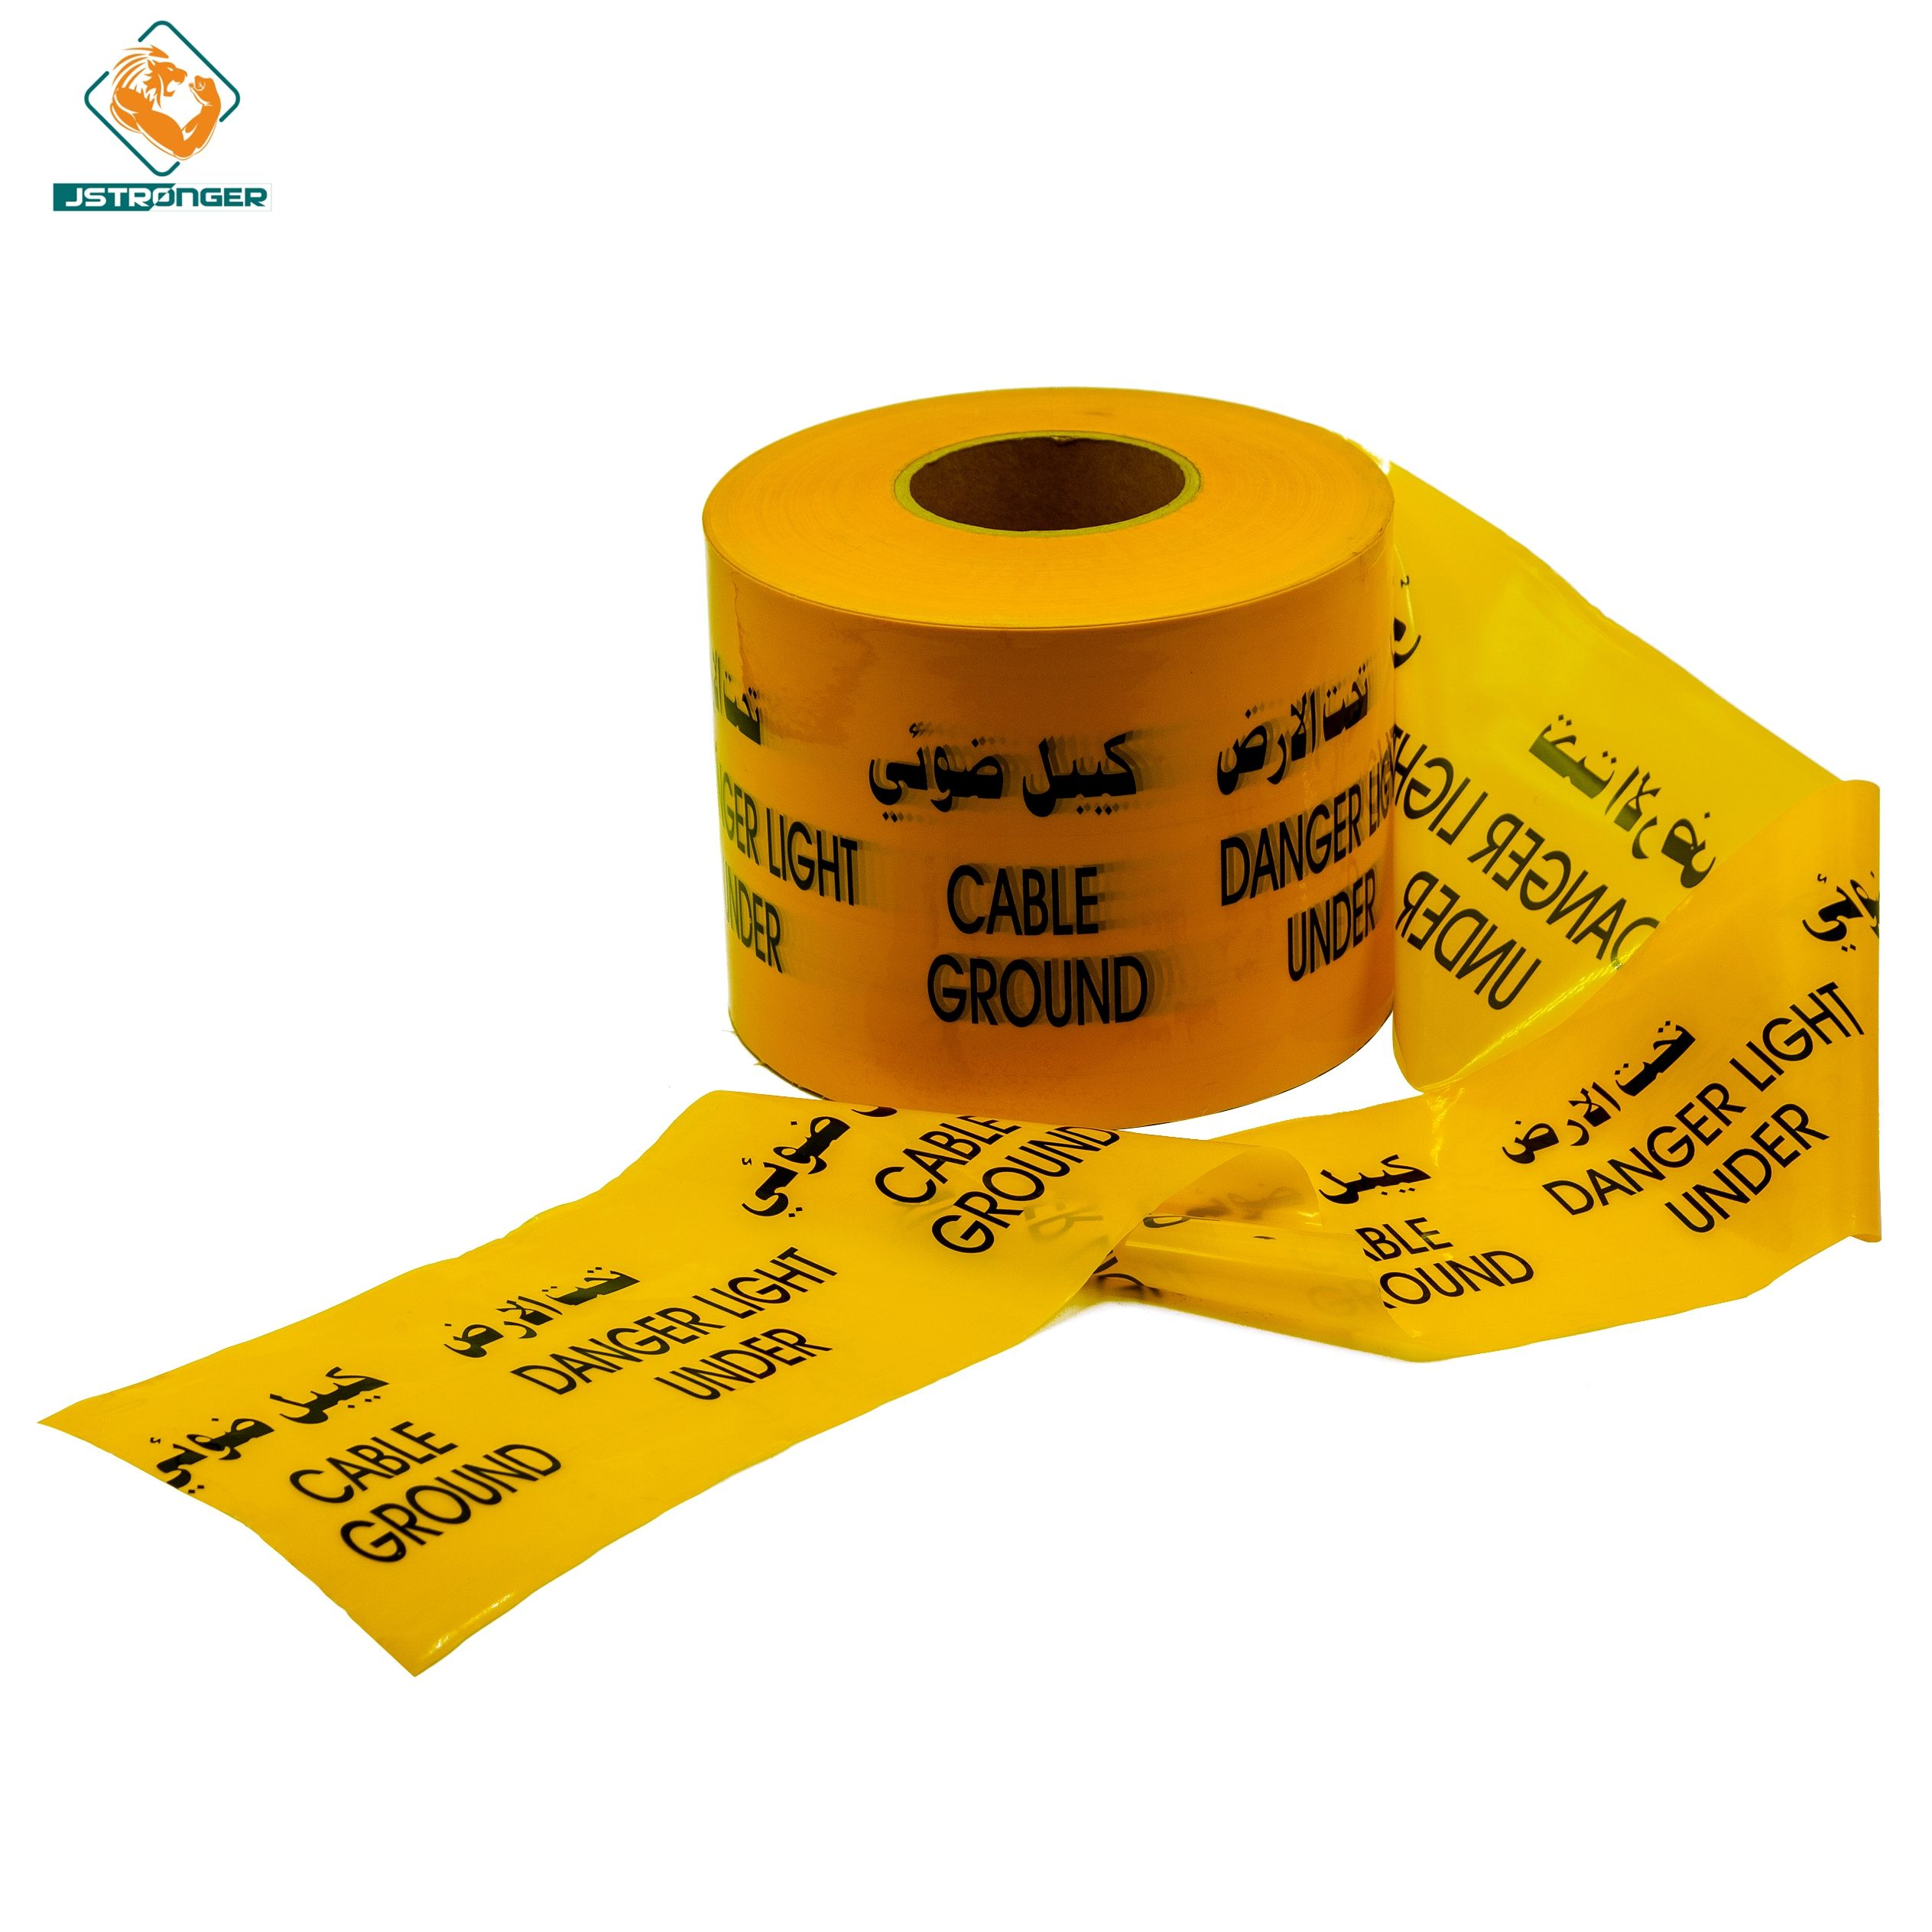 Factory Supply Custom Printed Barrier Tape Caution Underground Safety Warning Tape barrier tape